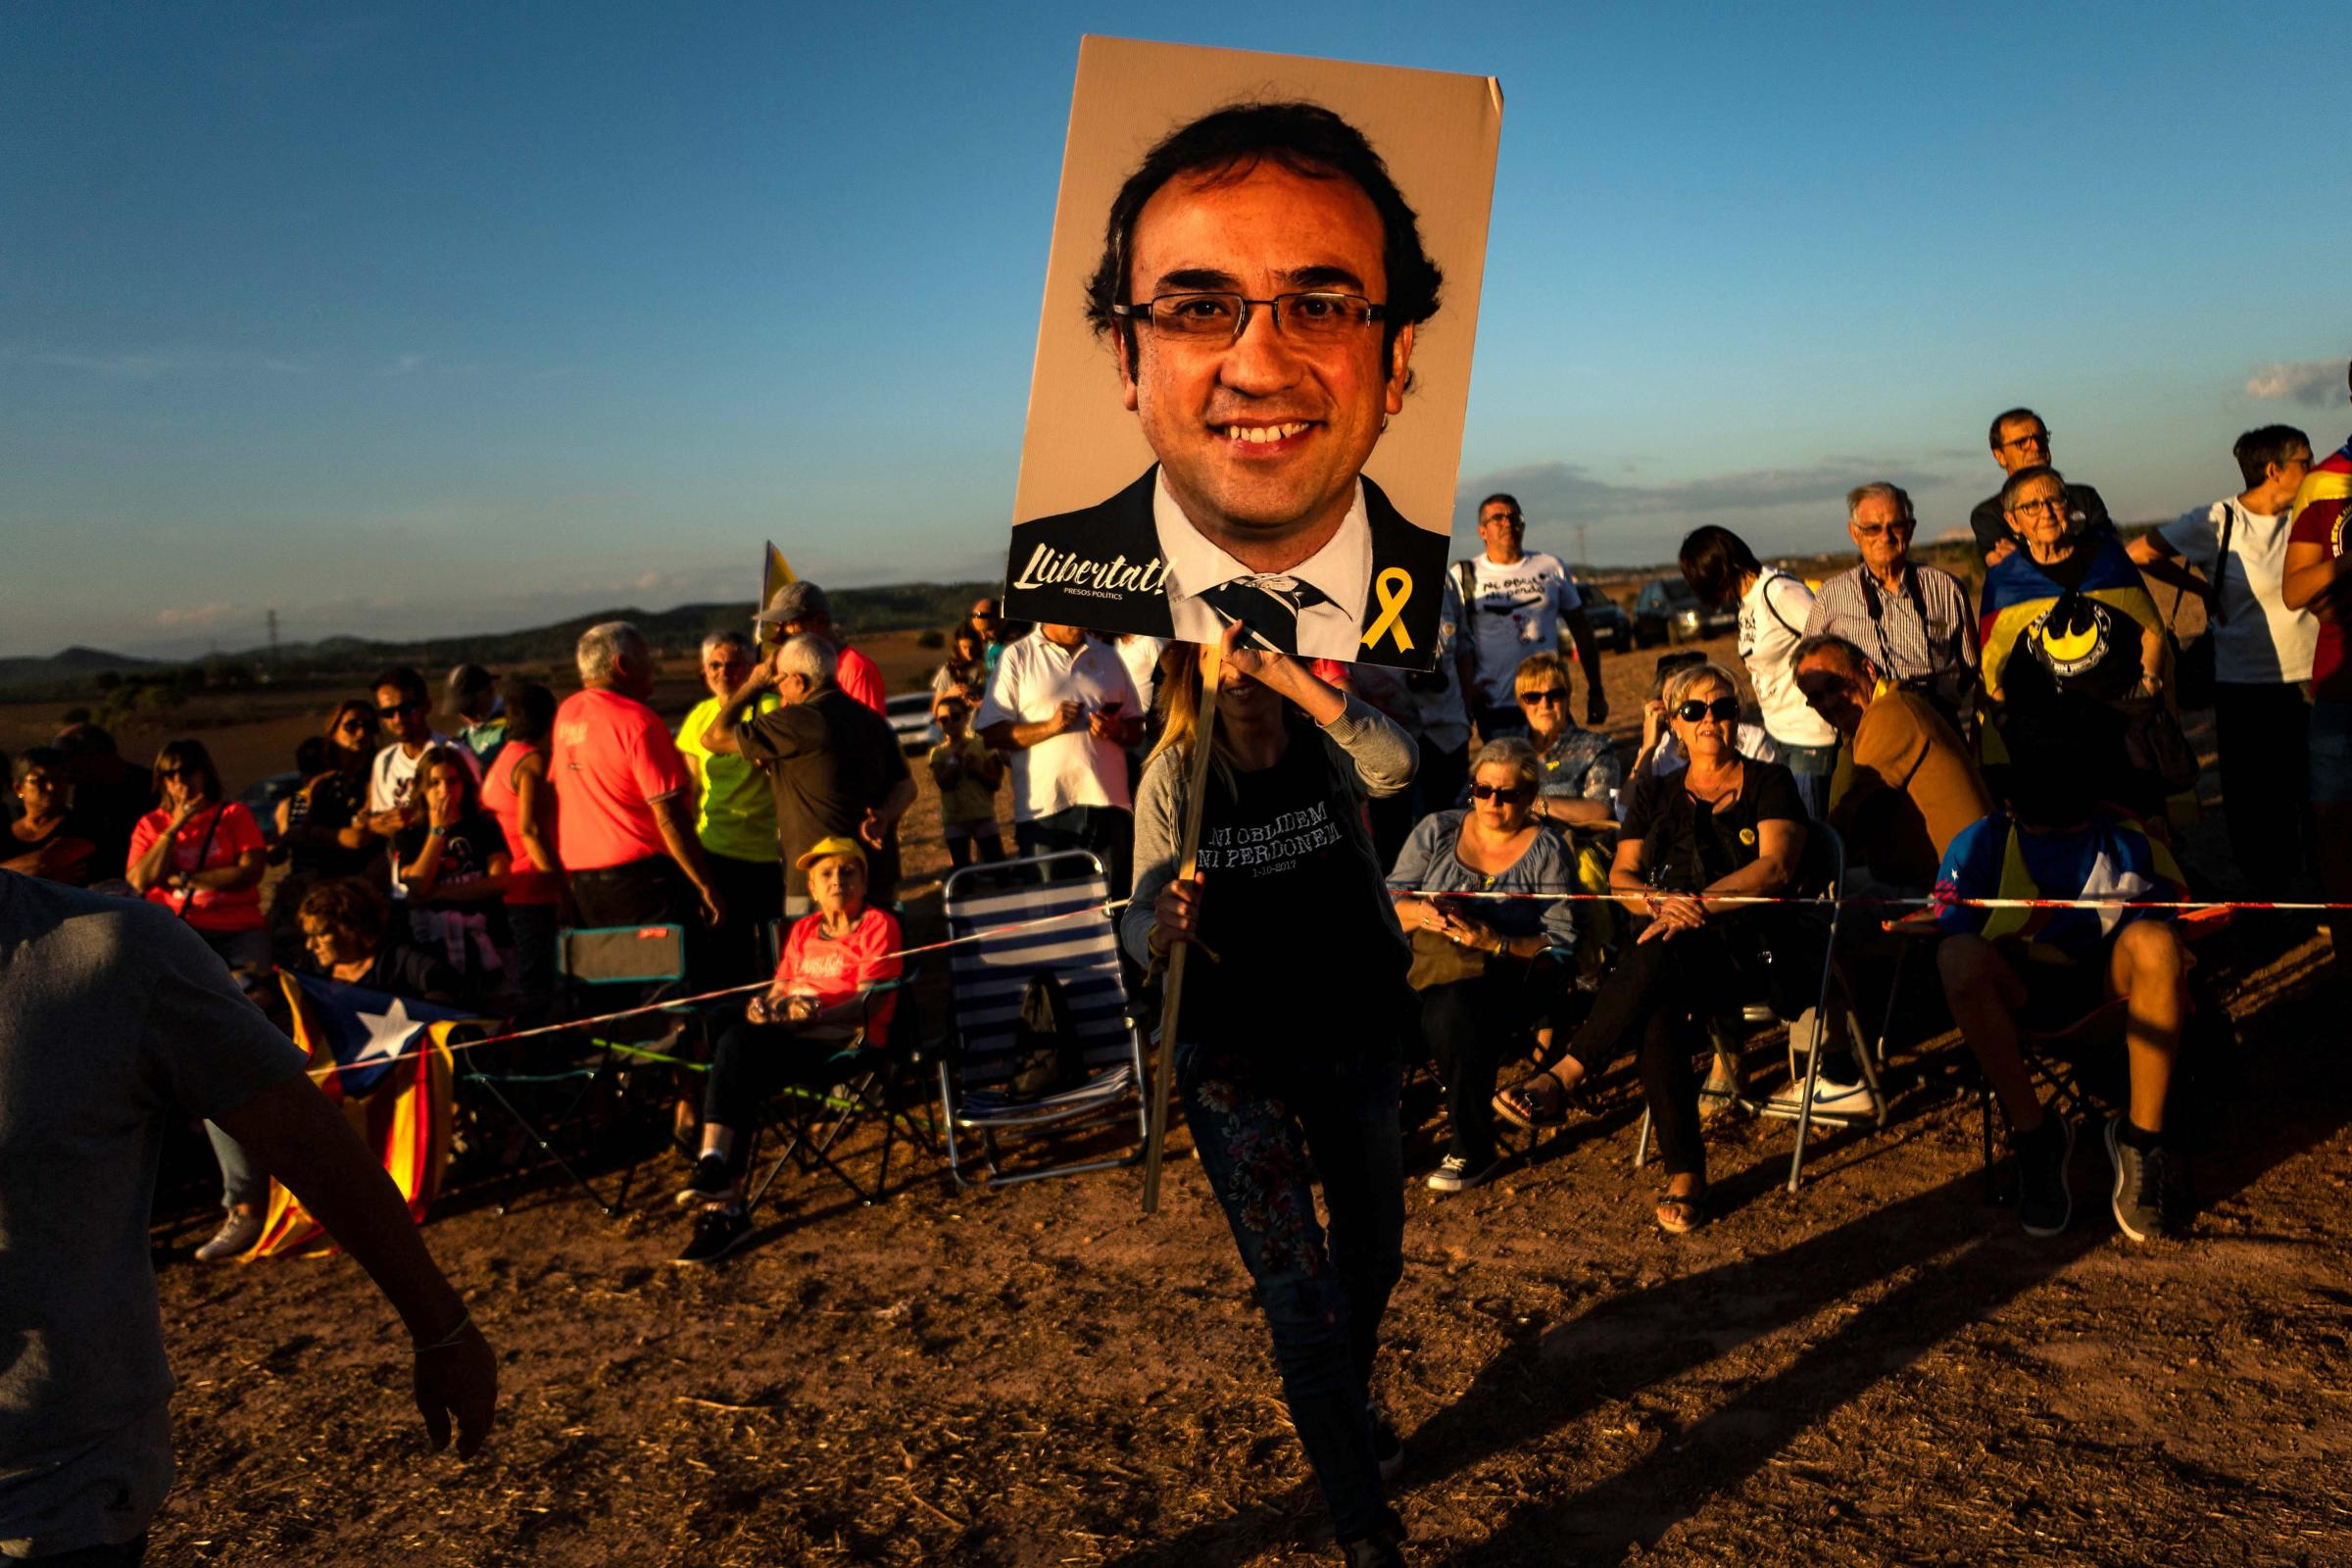 A Catalan independence supporter holds a portraits of jailed separatist leader Jordi Turill, who remains on hunger strike